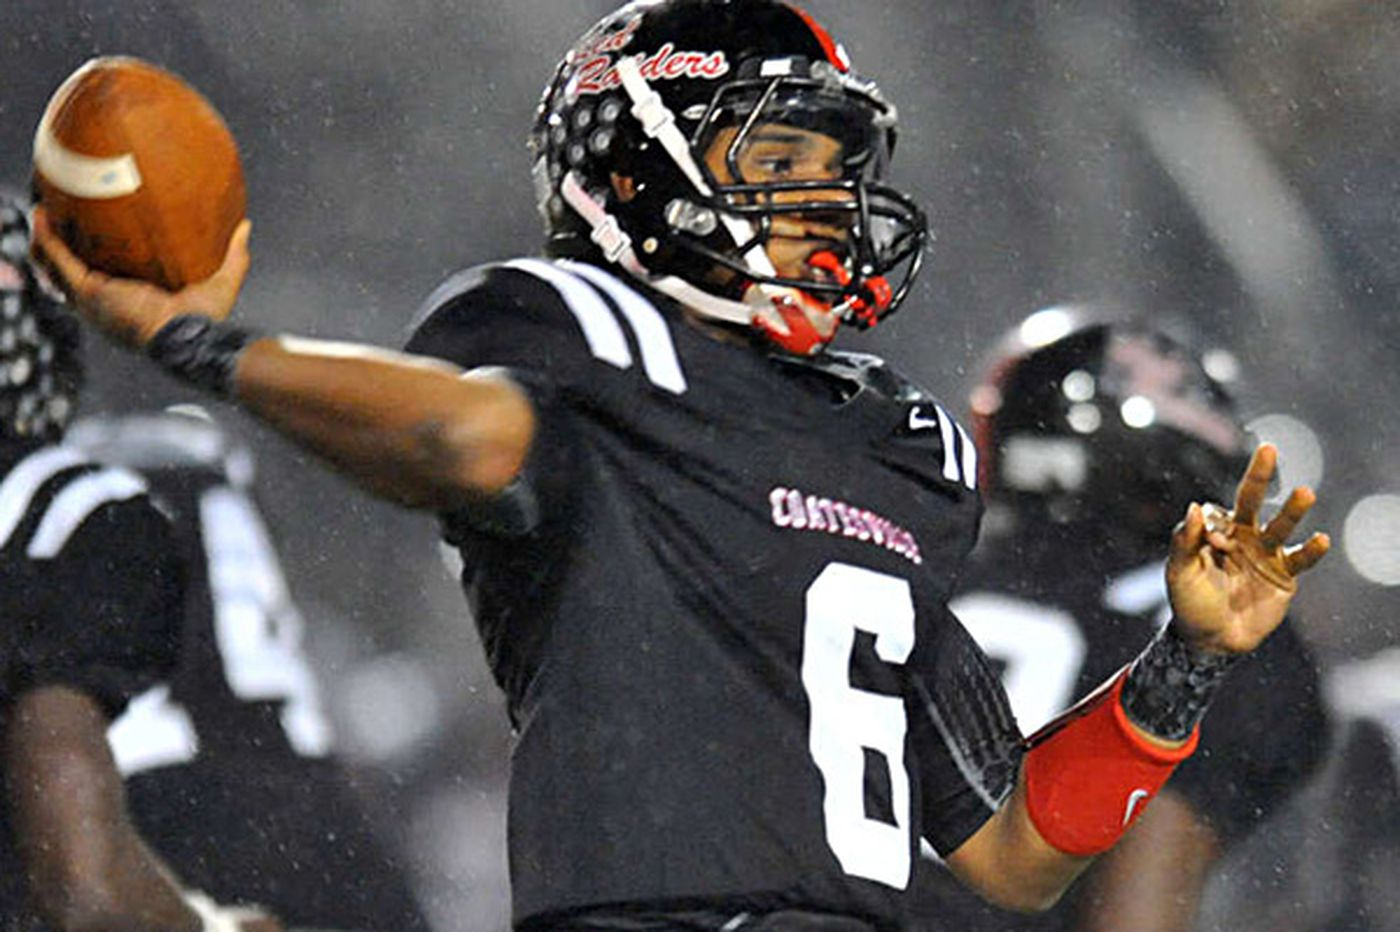 Coatesville's Hunt is player of year